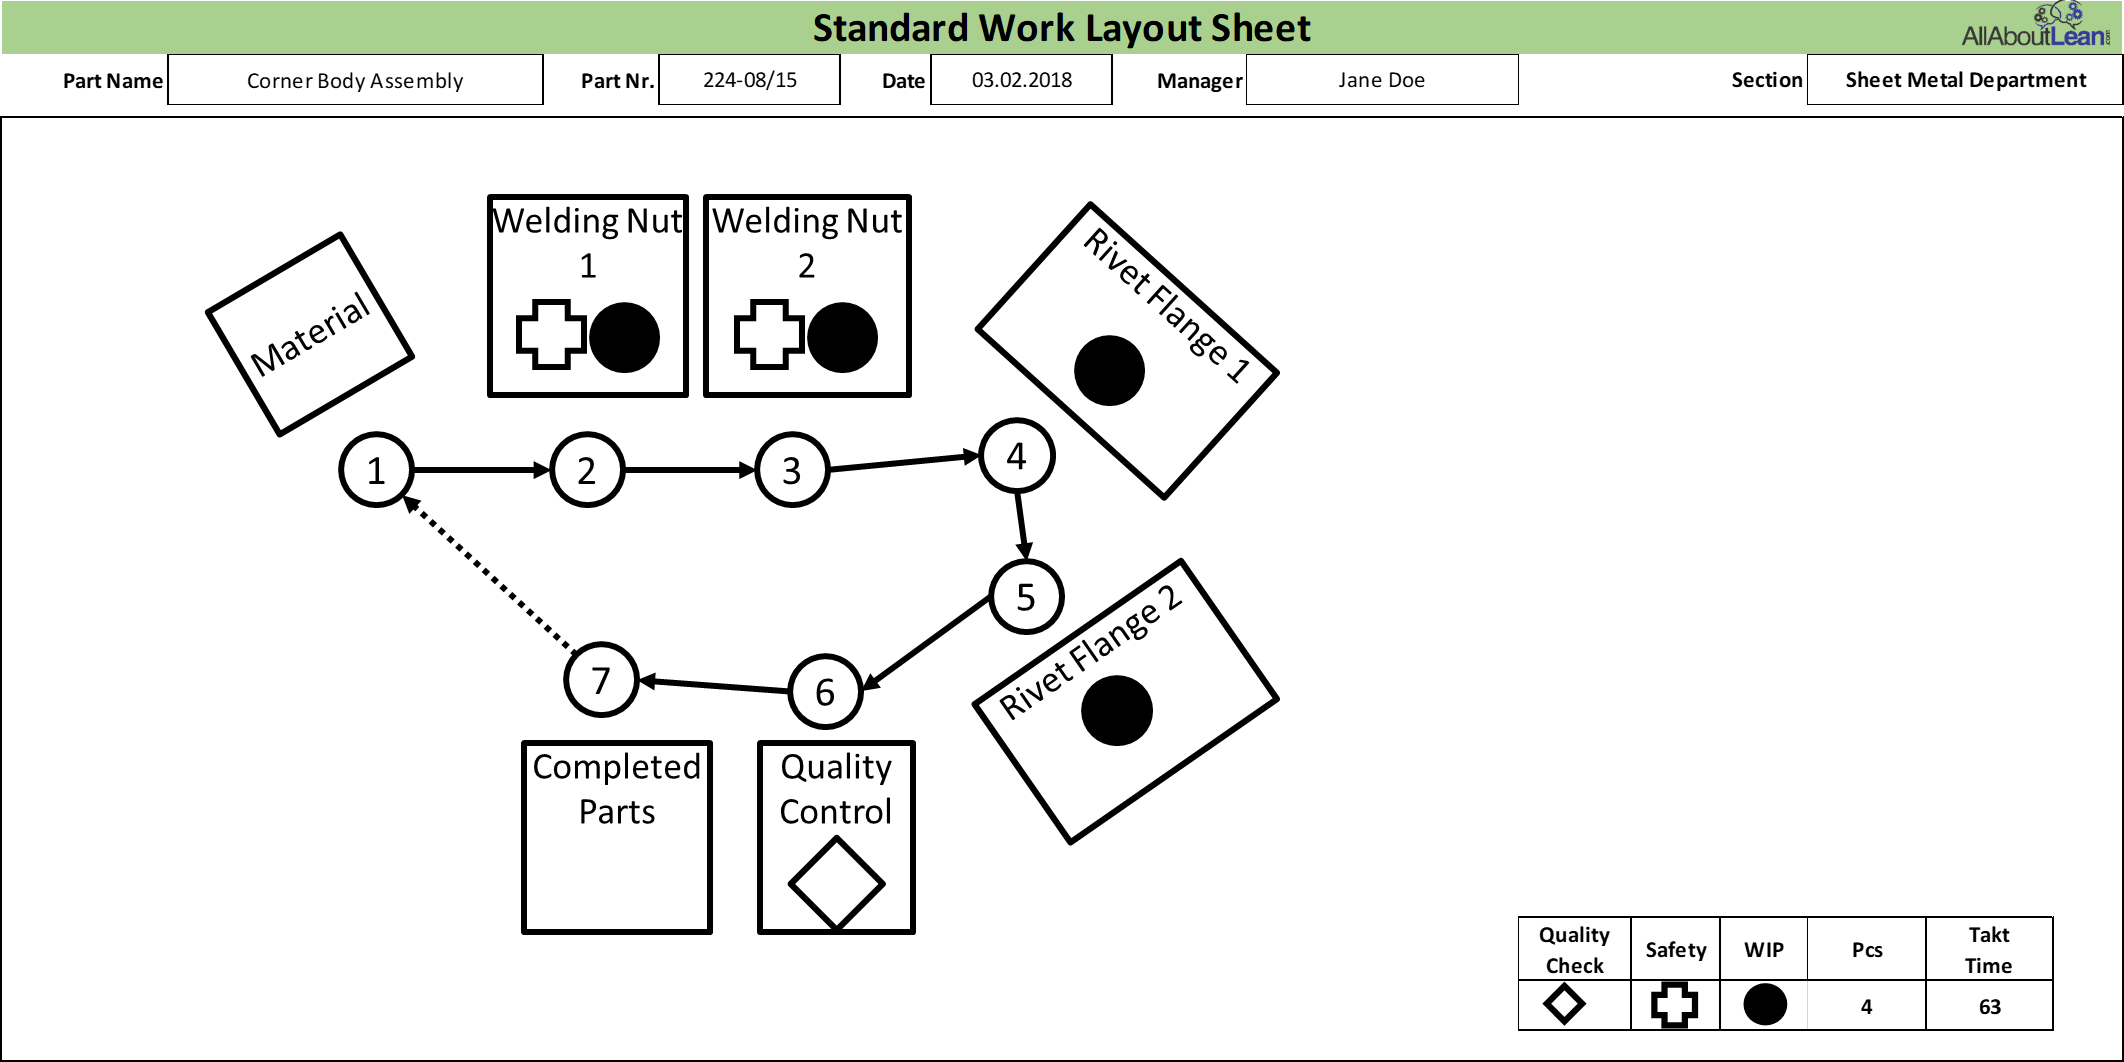 toyota standard work layout example allaboutlean com